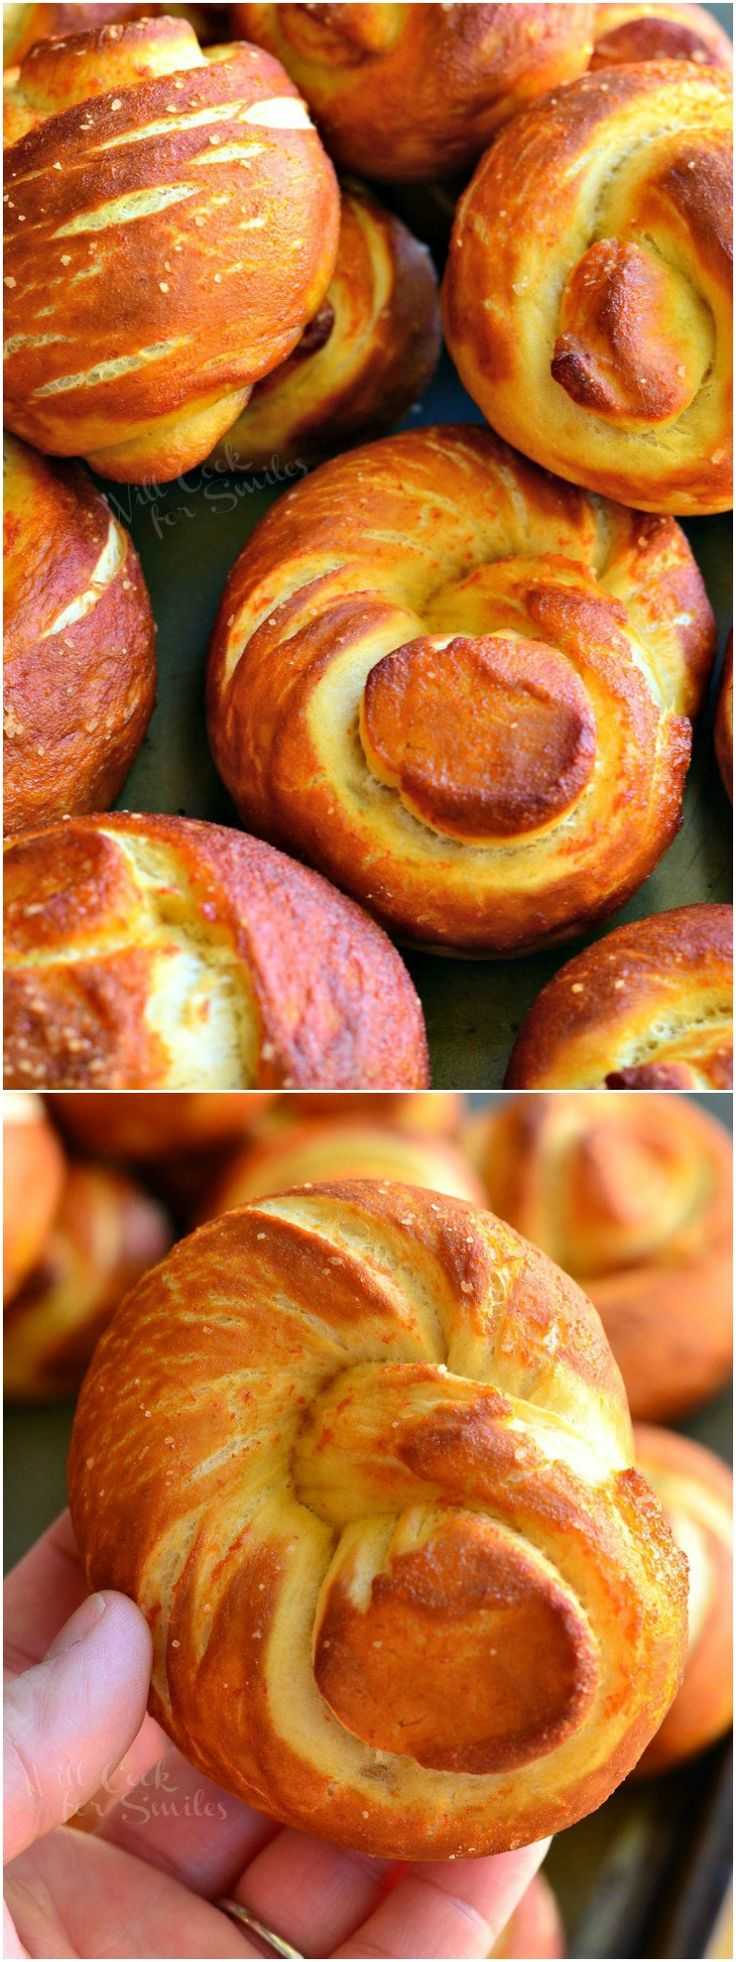 Sriracha Honey Pretzel Knots from willcookforsmiles.com #snack #spicy #gameday